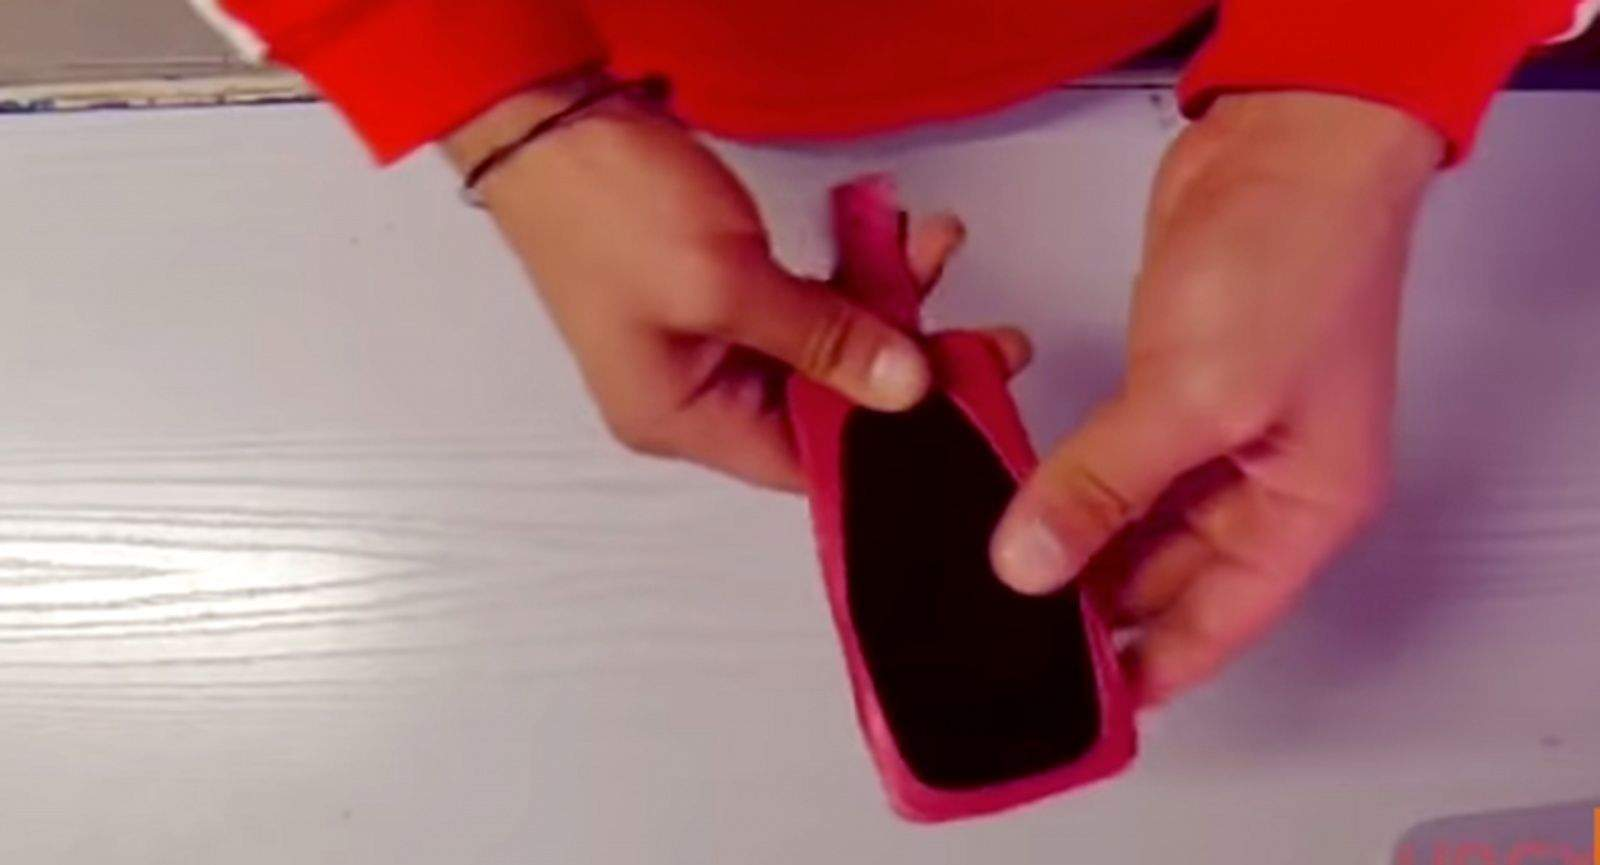 A balloon can make a quick iPhone cover in a pinch, but is not recommended. Photo: Storyful/YouTube